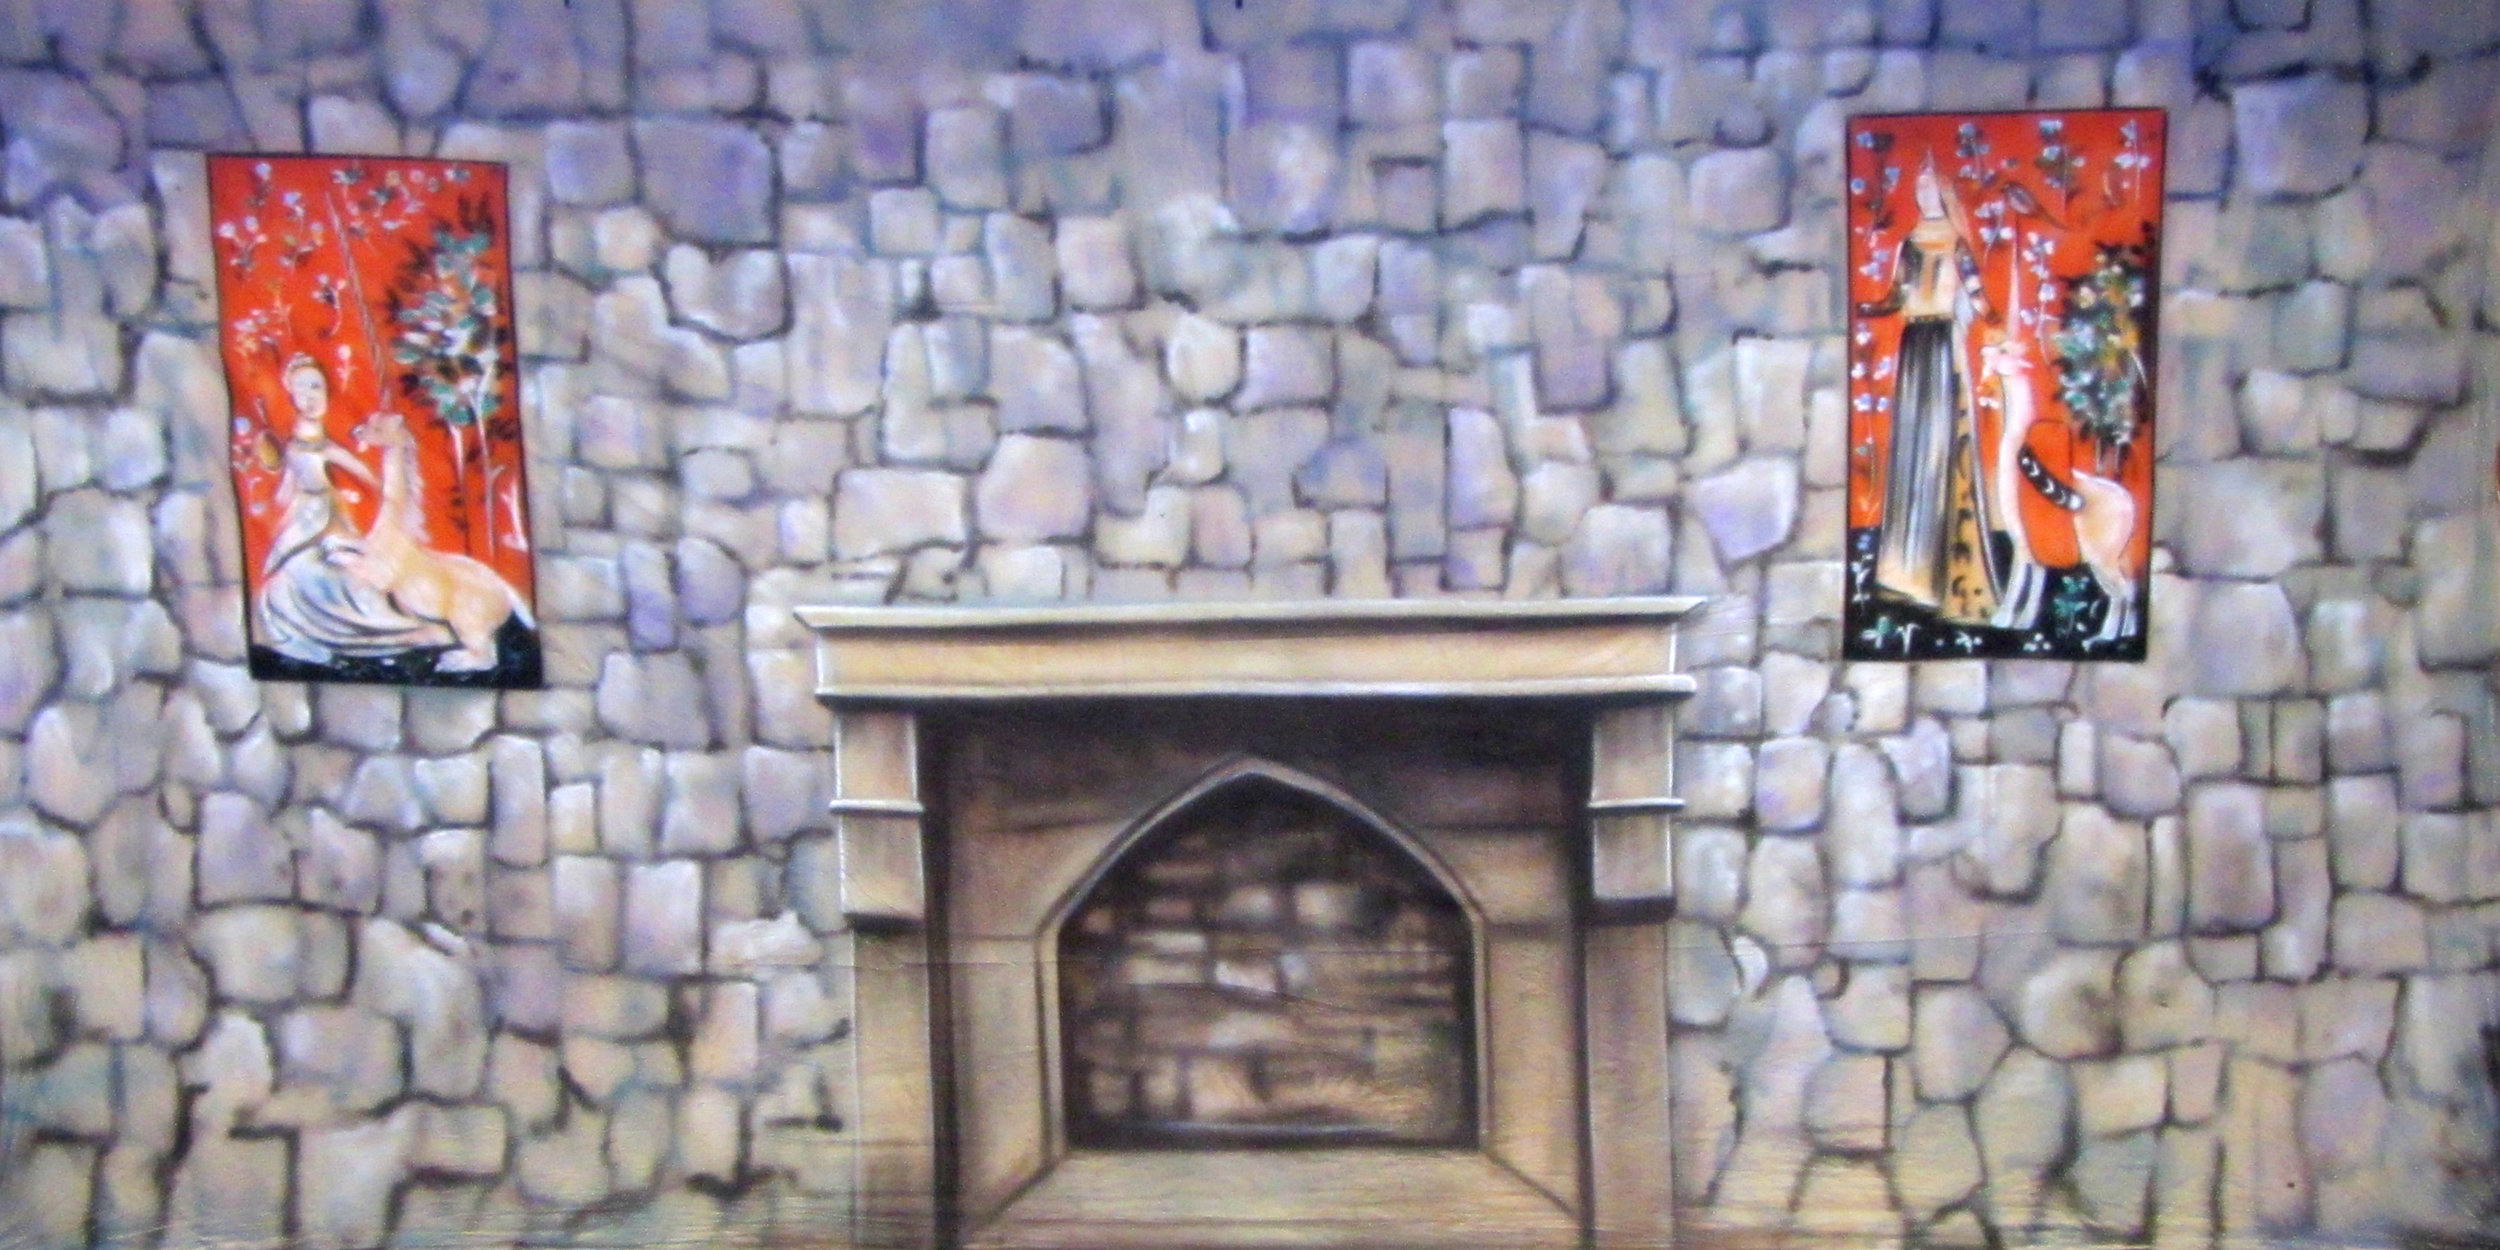 backdrop for hire - medieval - castle wall and fireplace - game of thrones.jpg